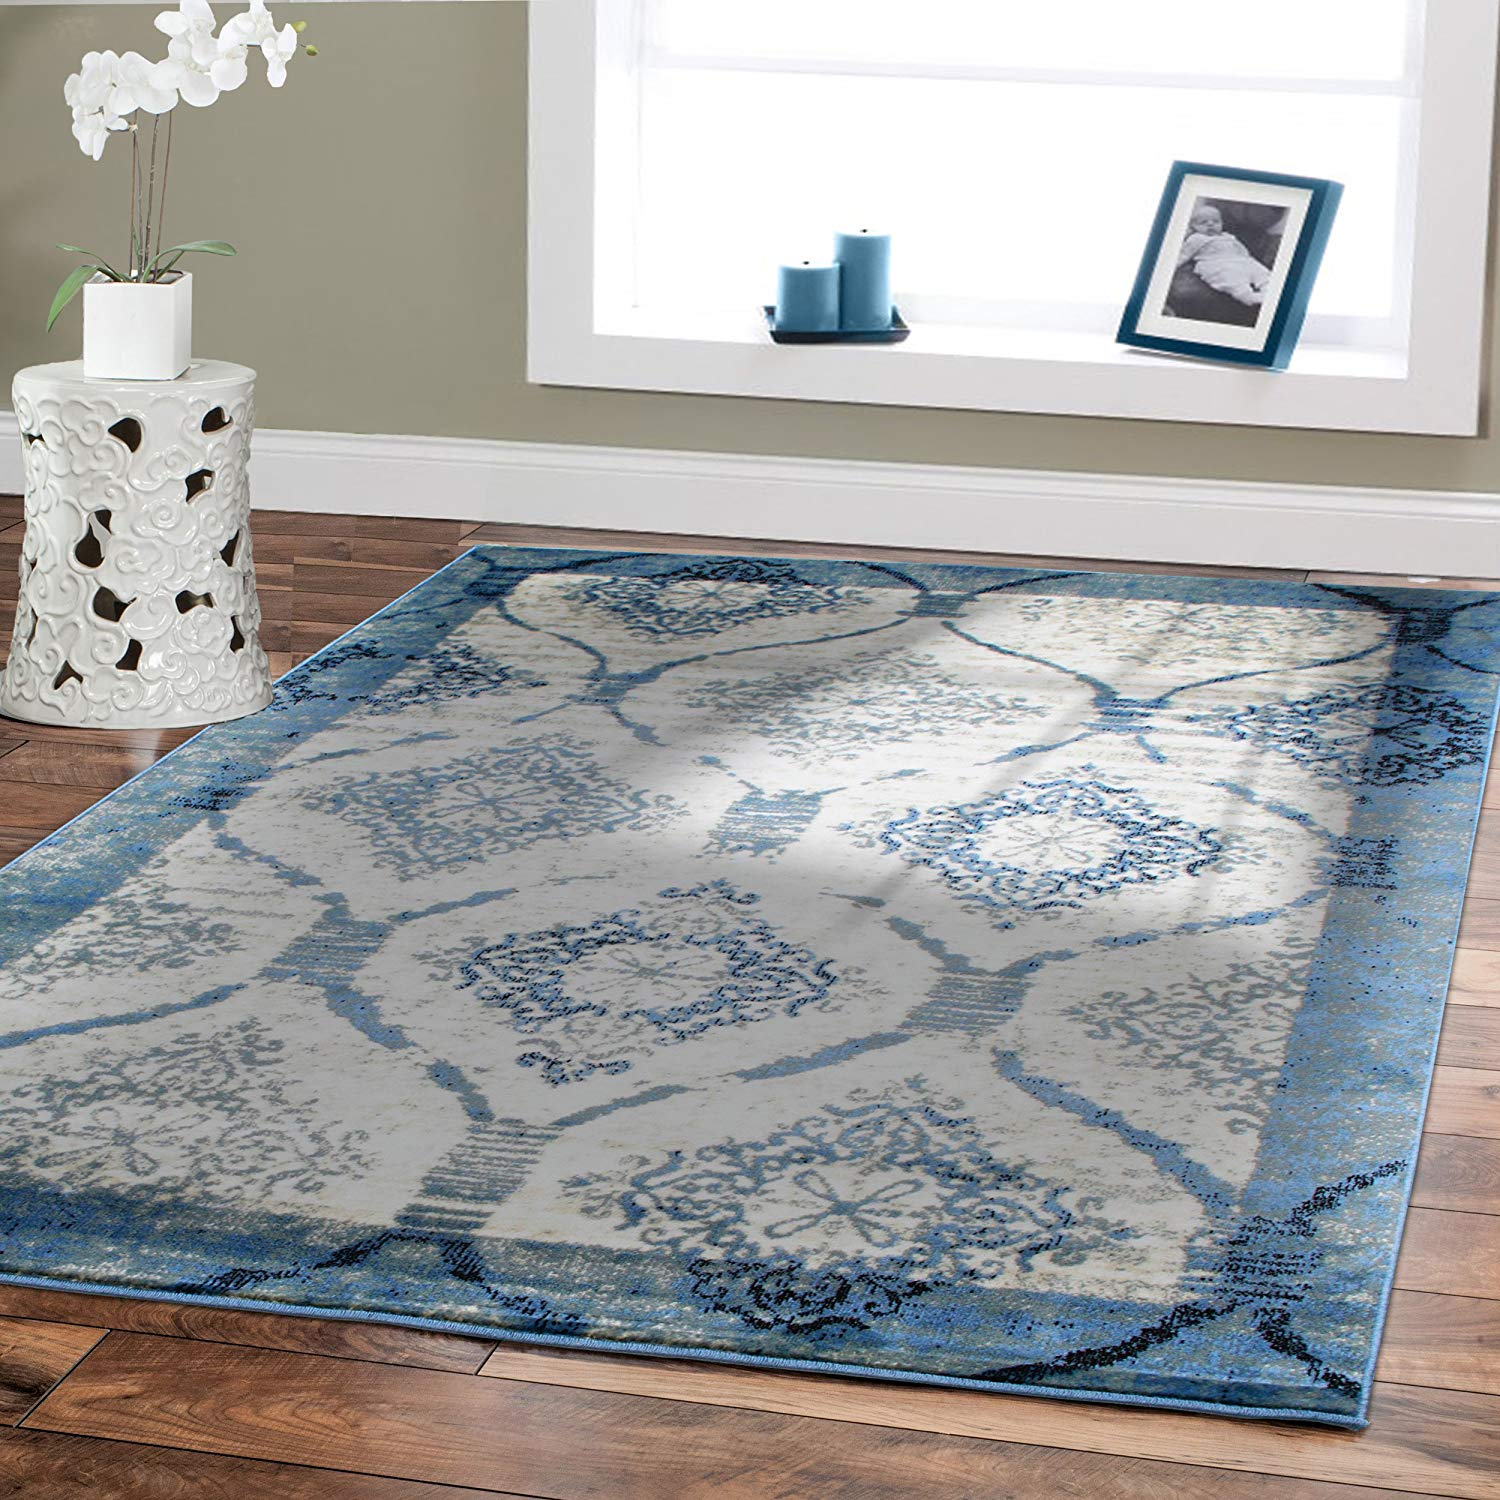 Important factors for choosing contemporary rugs